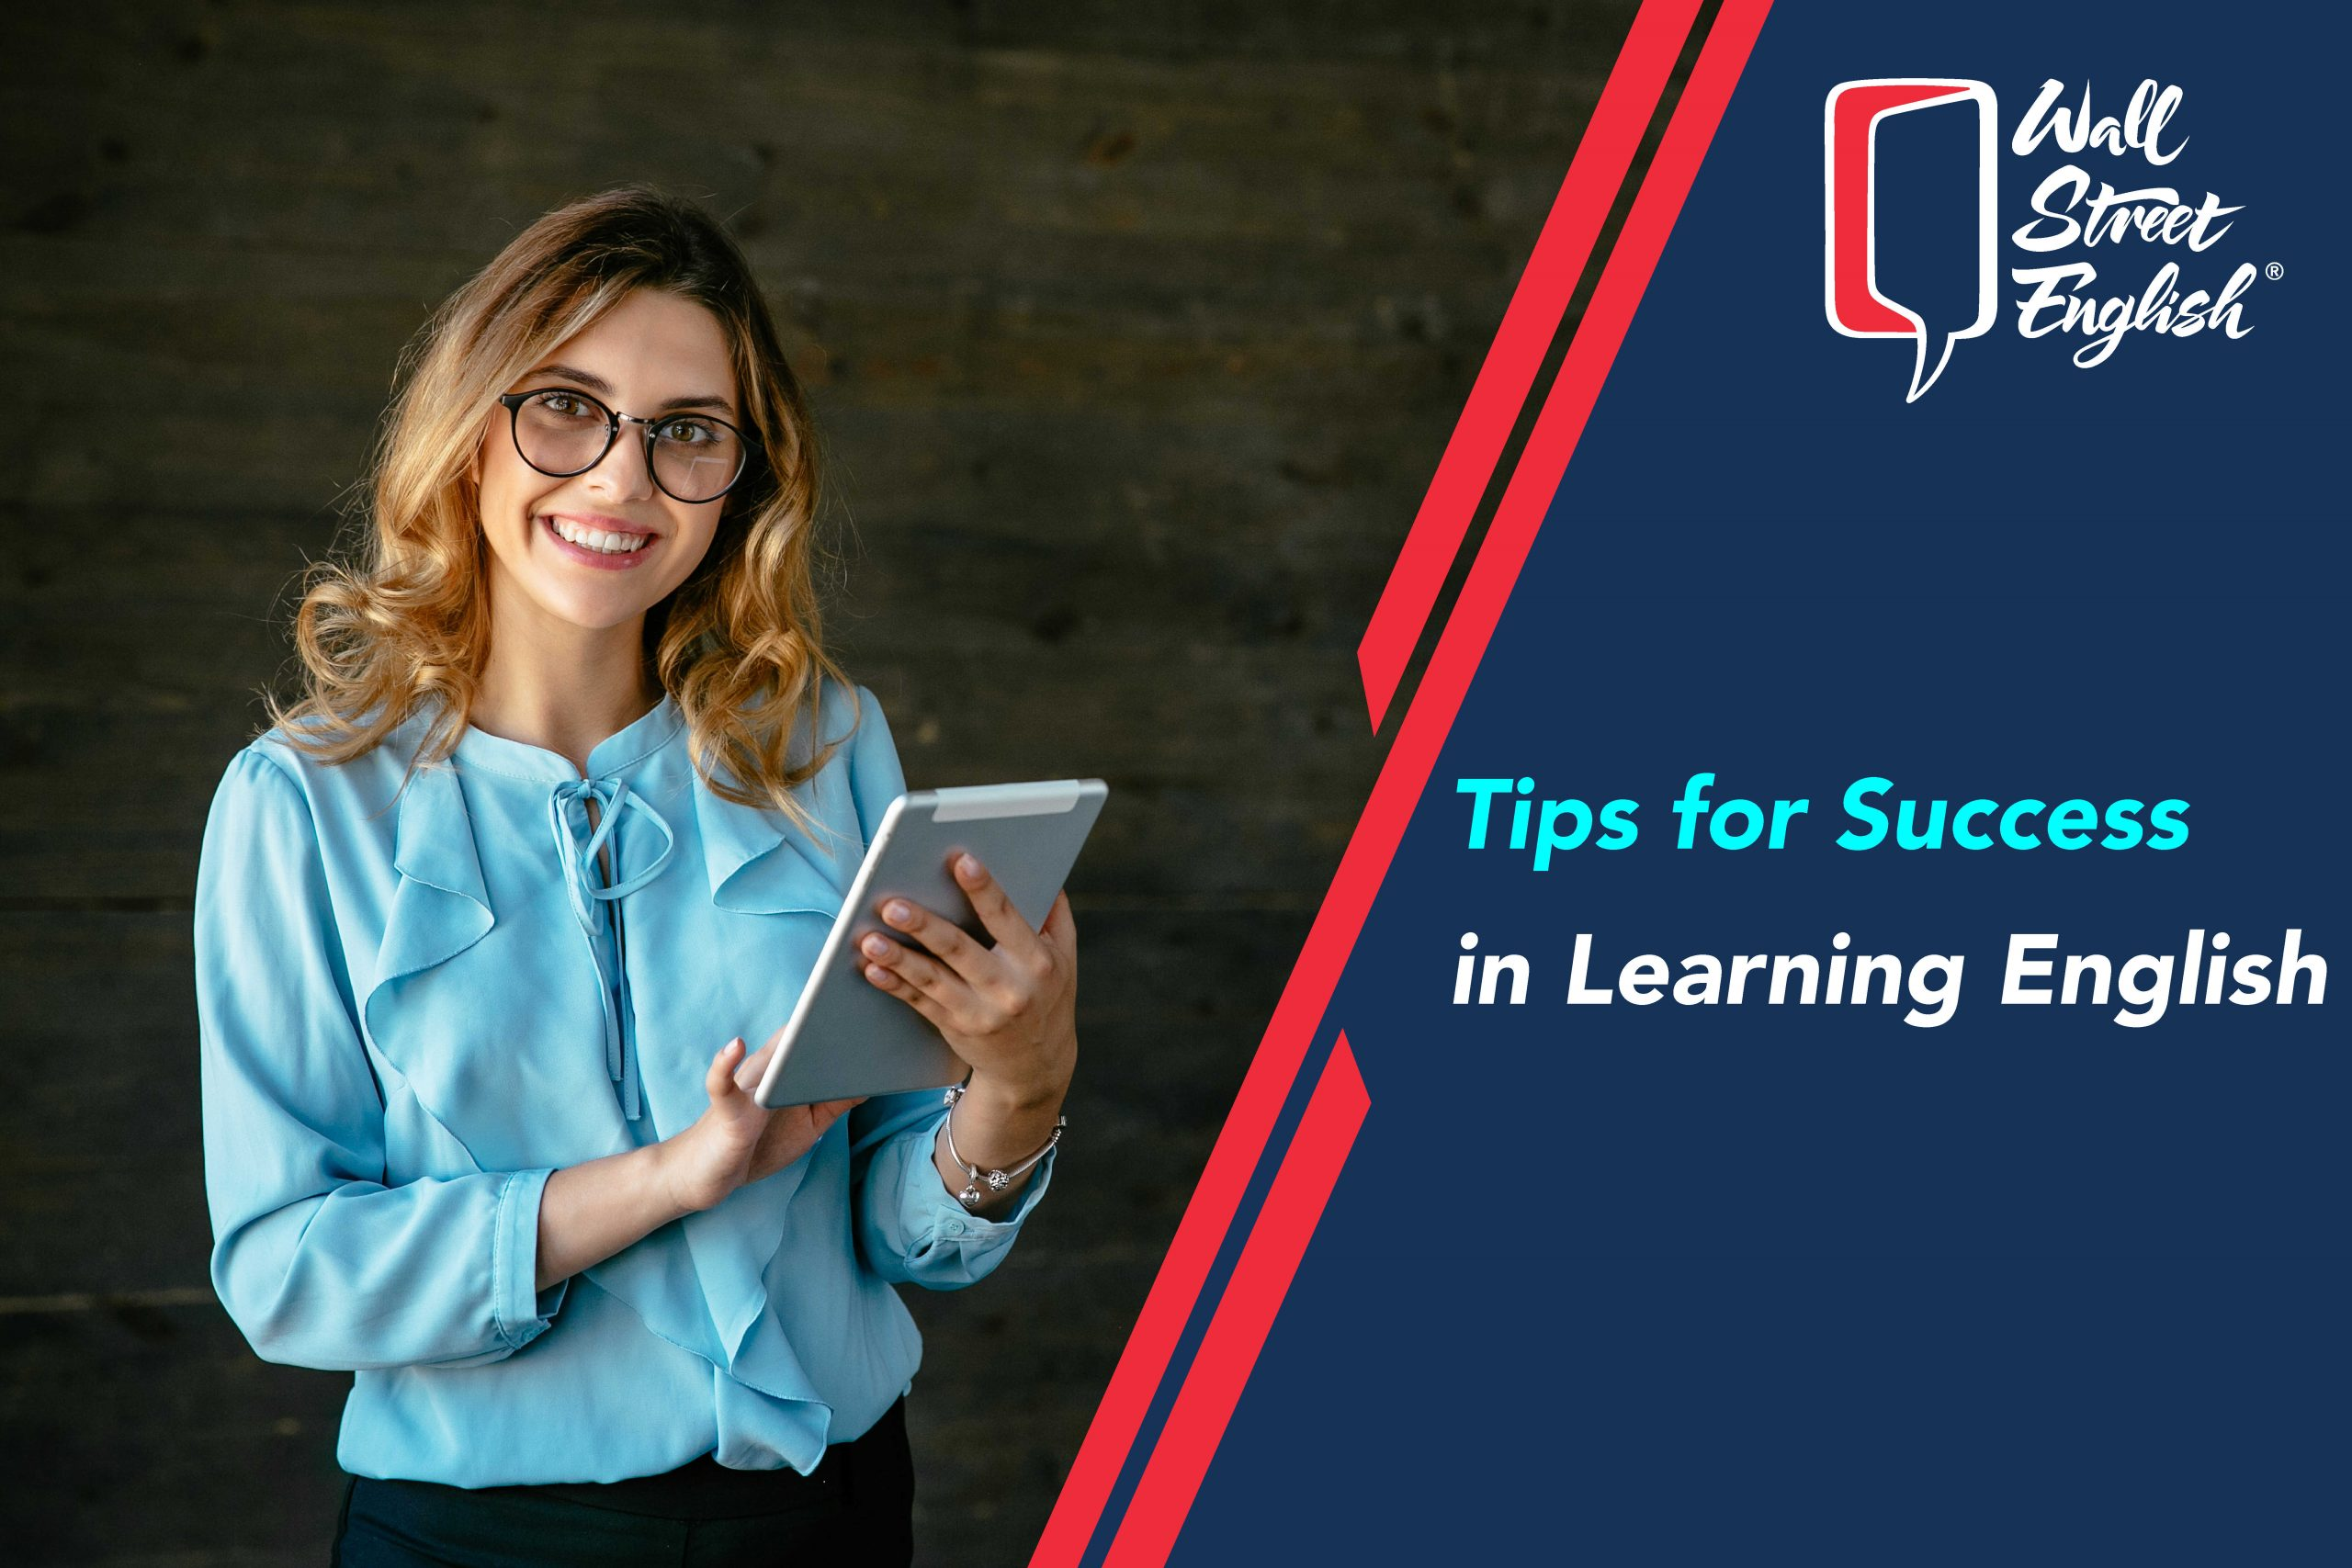 Tips for Success in Learning English